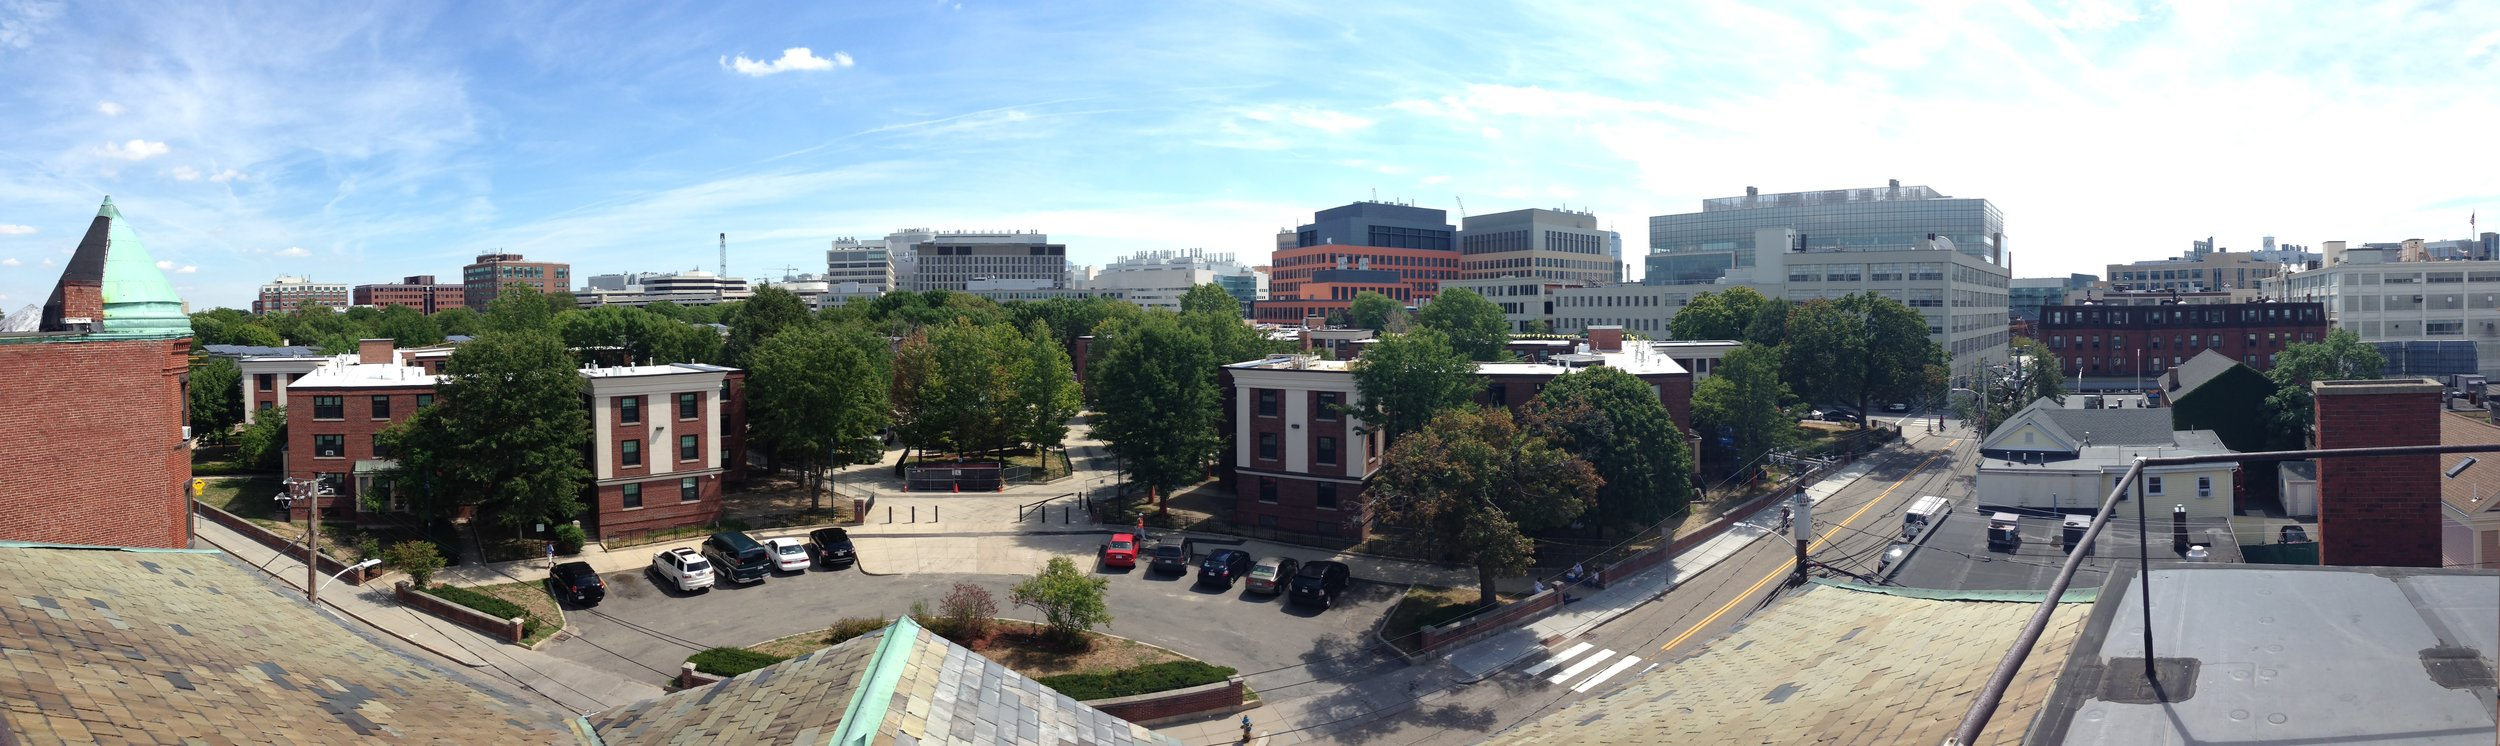 View from the roof of 105 Windsor Street